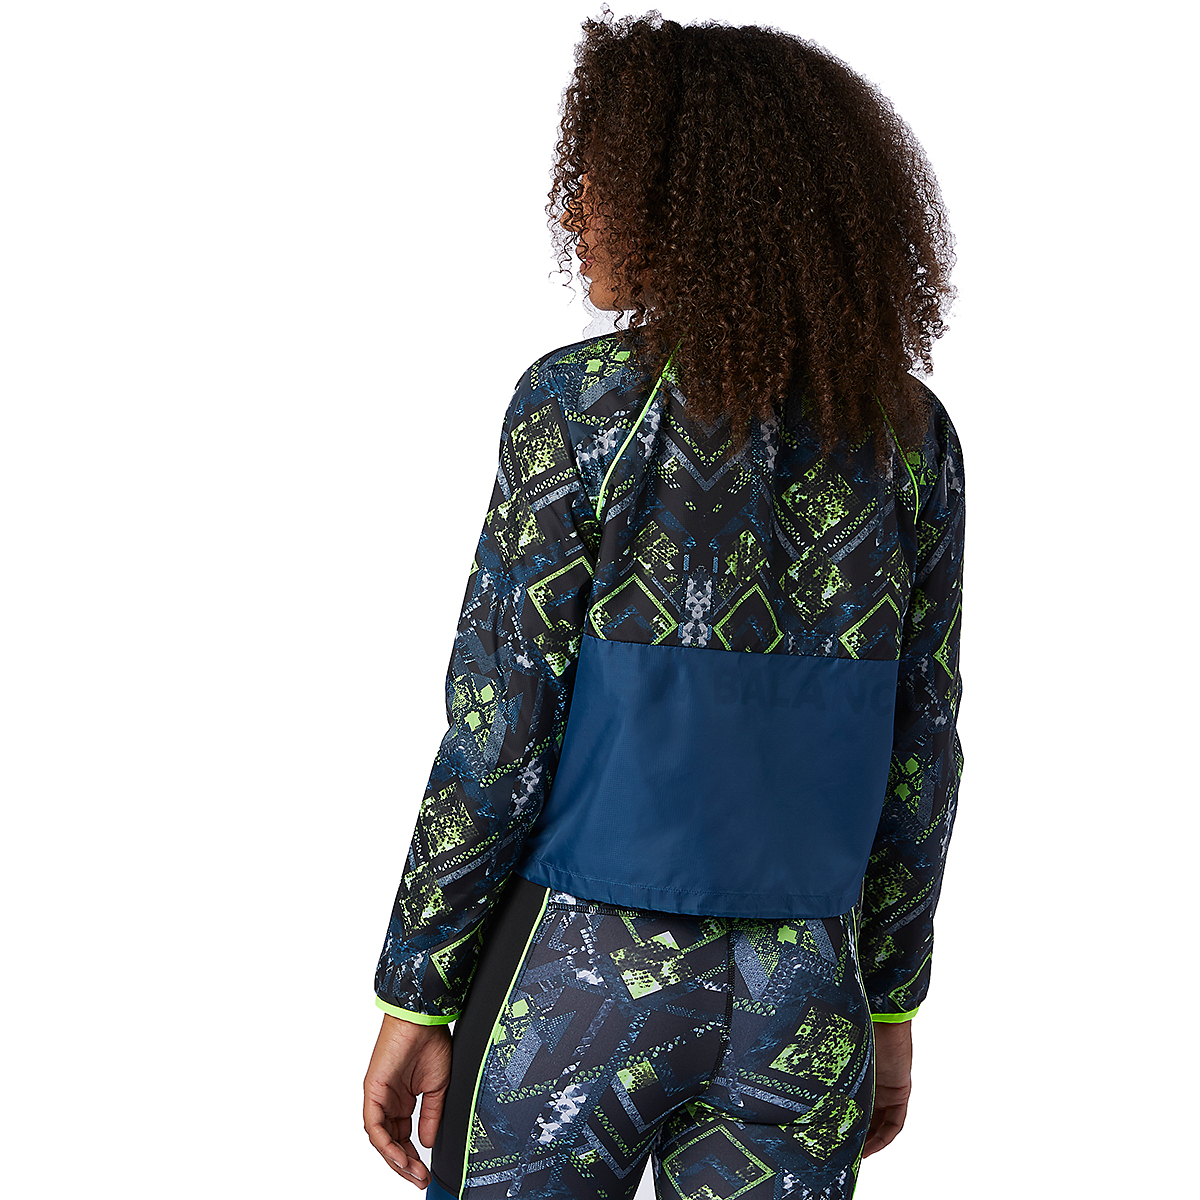 Women's New Balance Printed Fast Flight Jacket - Color: Print - Size: XS, Print, large, image 3